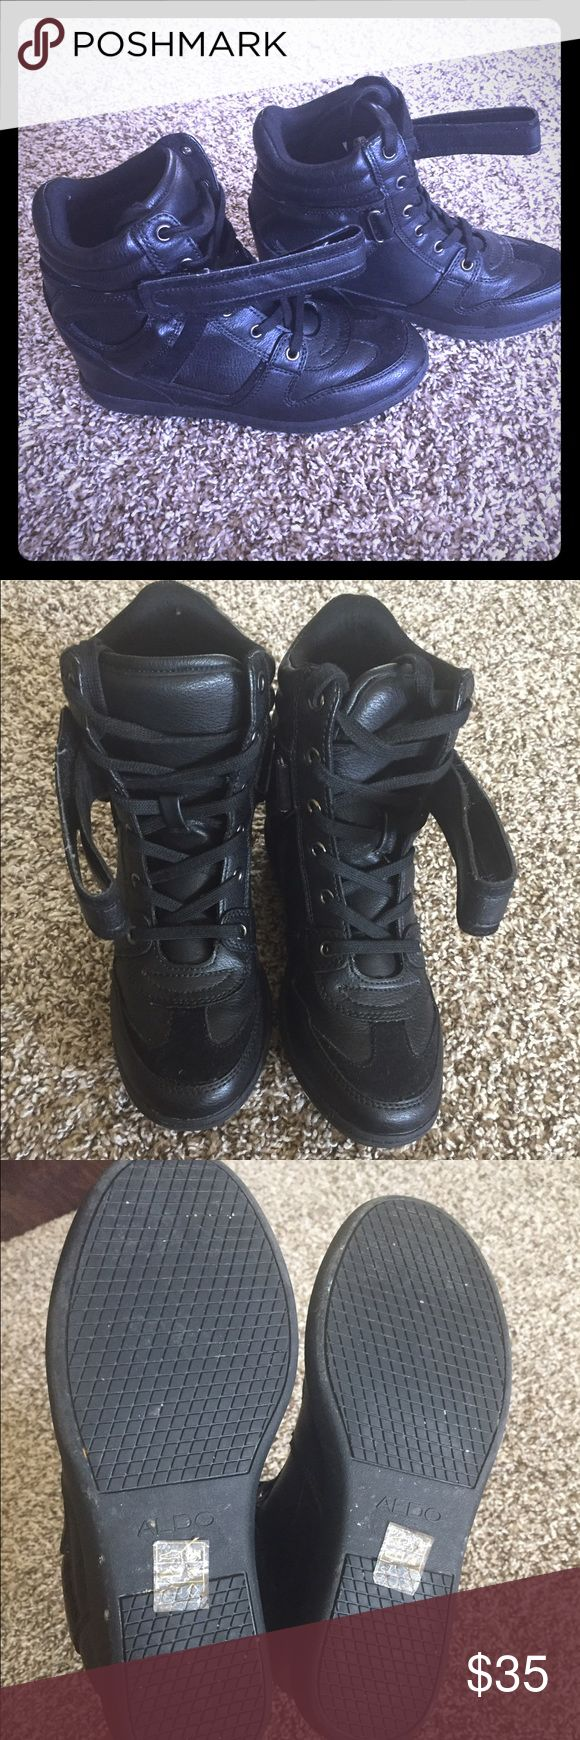 """Aldo hidden wedge sneakers All black wedge sneakers. Comfortable and stylish. Worn about 5 times; everything in good condition! Lace up, and strap in the front for tightening! Wedge is about 2"""". Aldo Shoes Sneakers"""